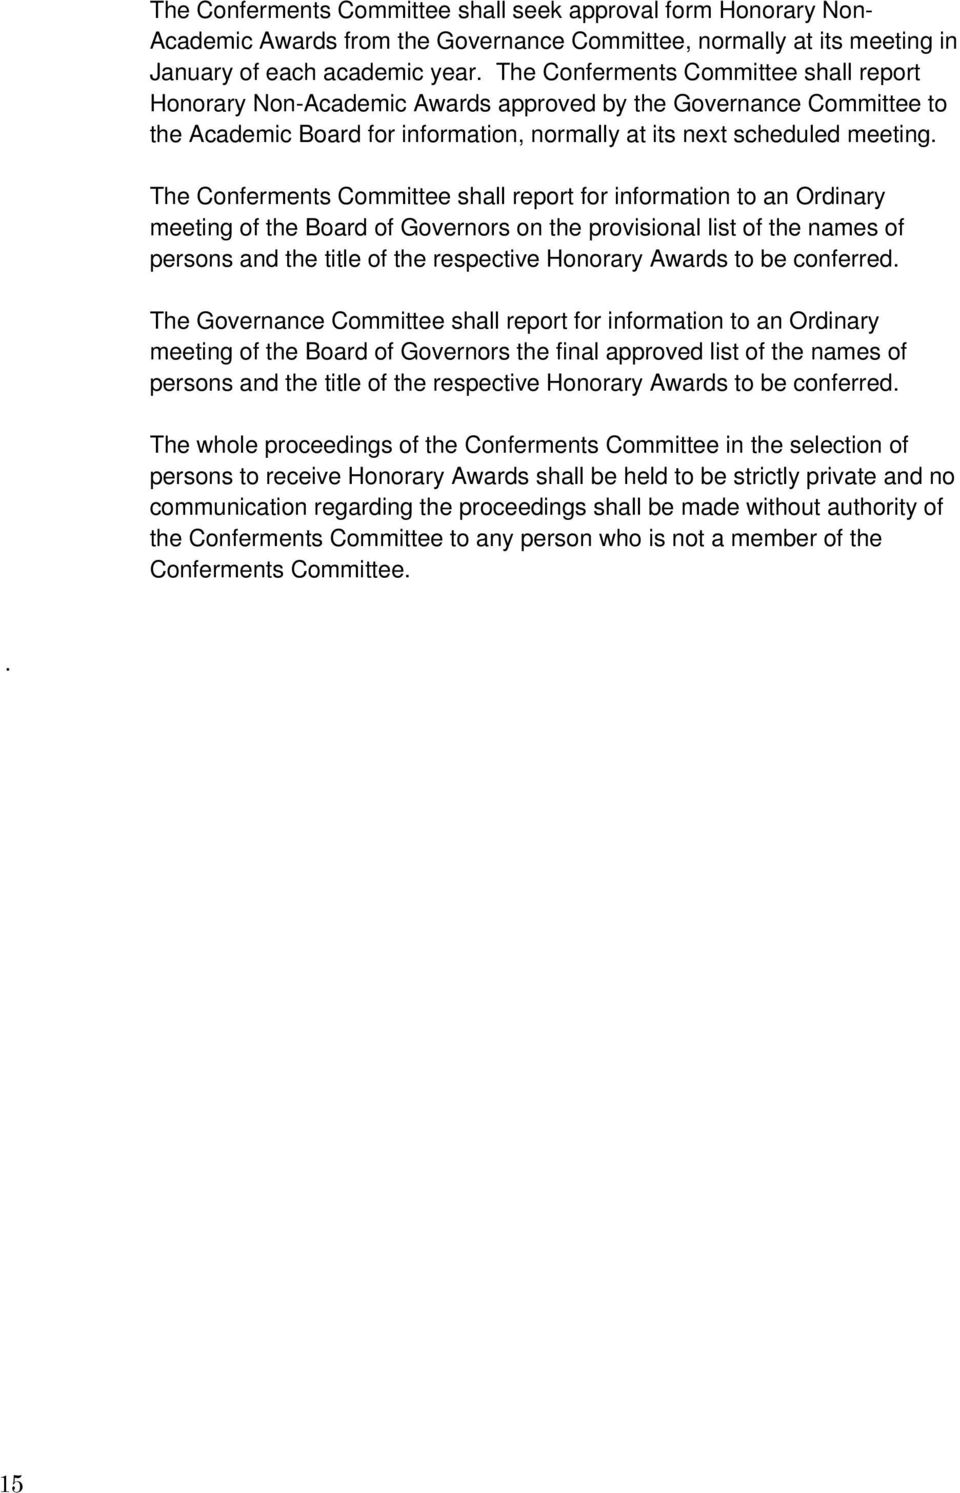 The Conferments Committee shall report for information to an Ordinary meeting of the Board of Governors on the provisional list of the names of persons and the title of the respective Honorary Awards